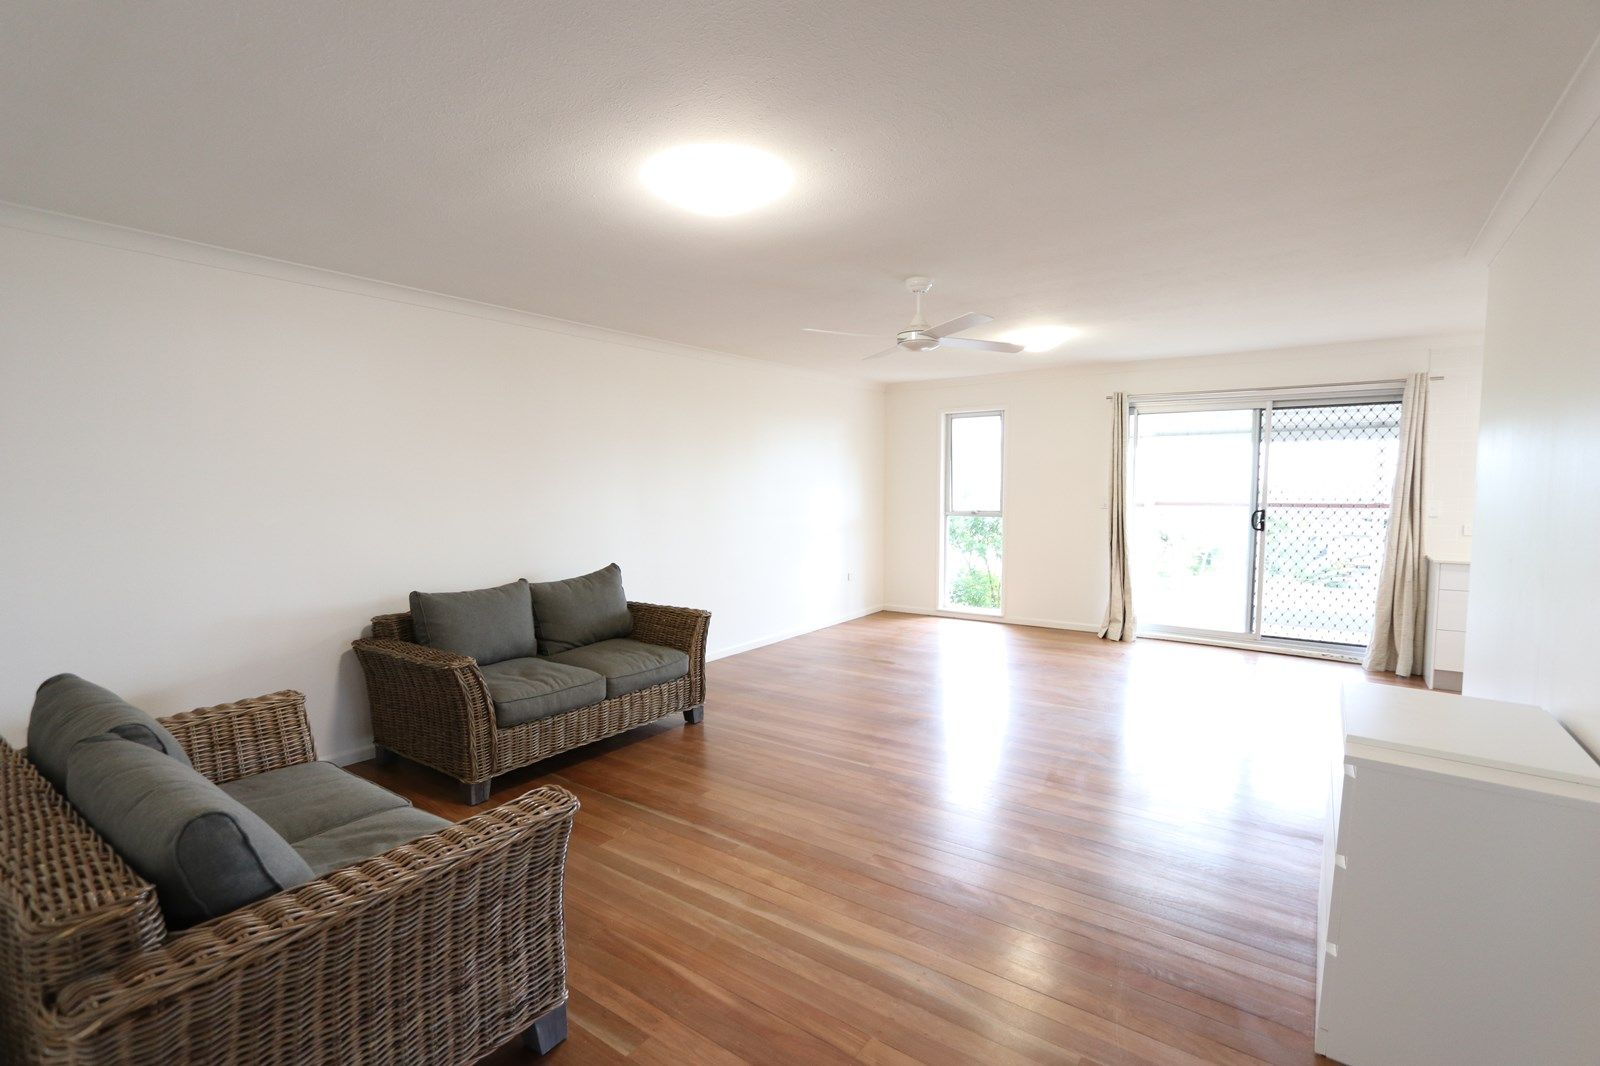 Unit 1/16 Woodgee St, Currumbin QLD 4223, Image 2